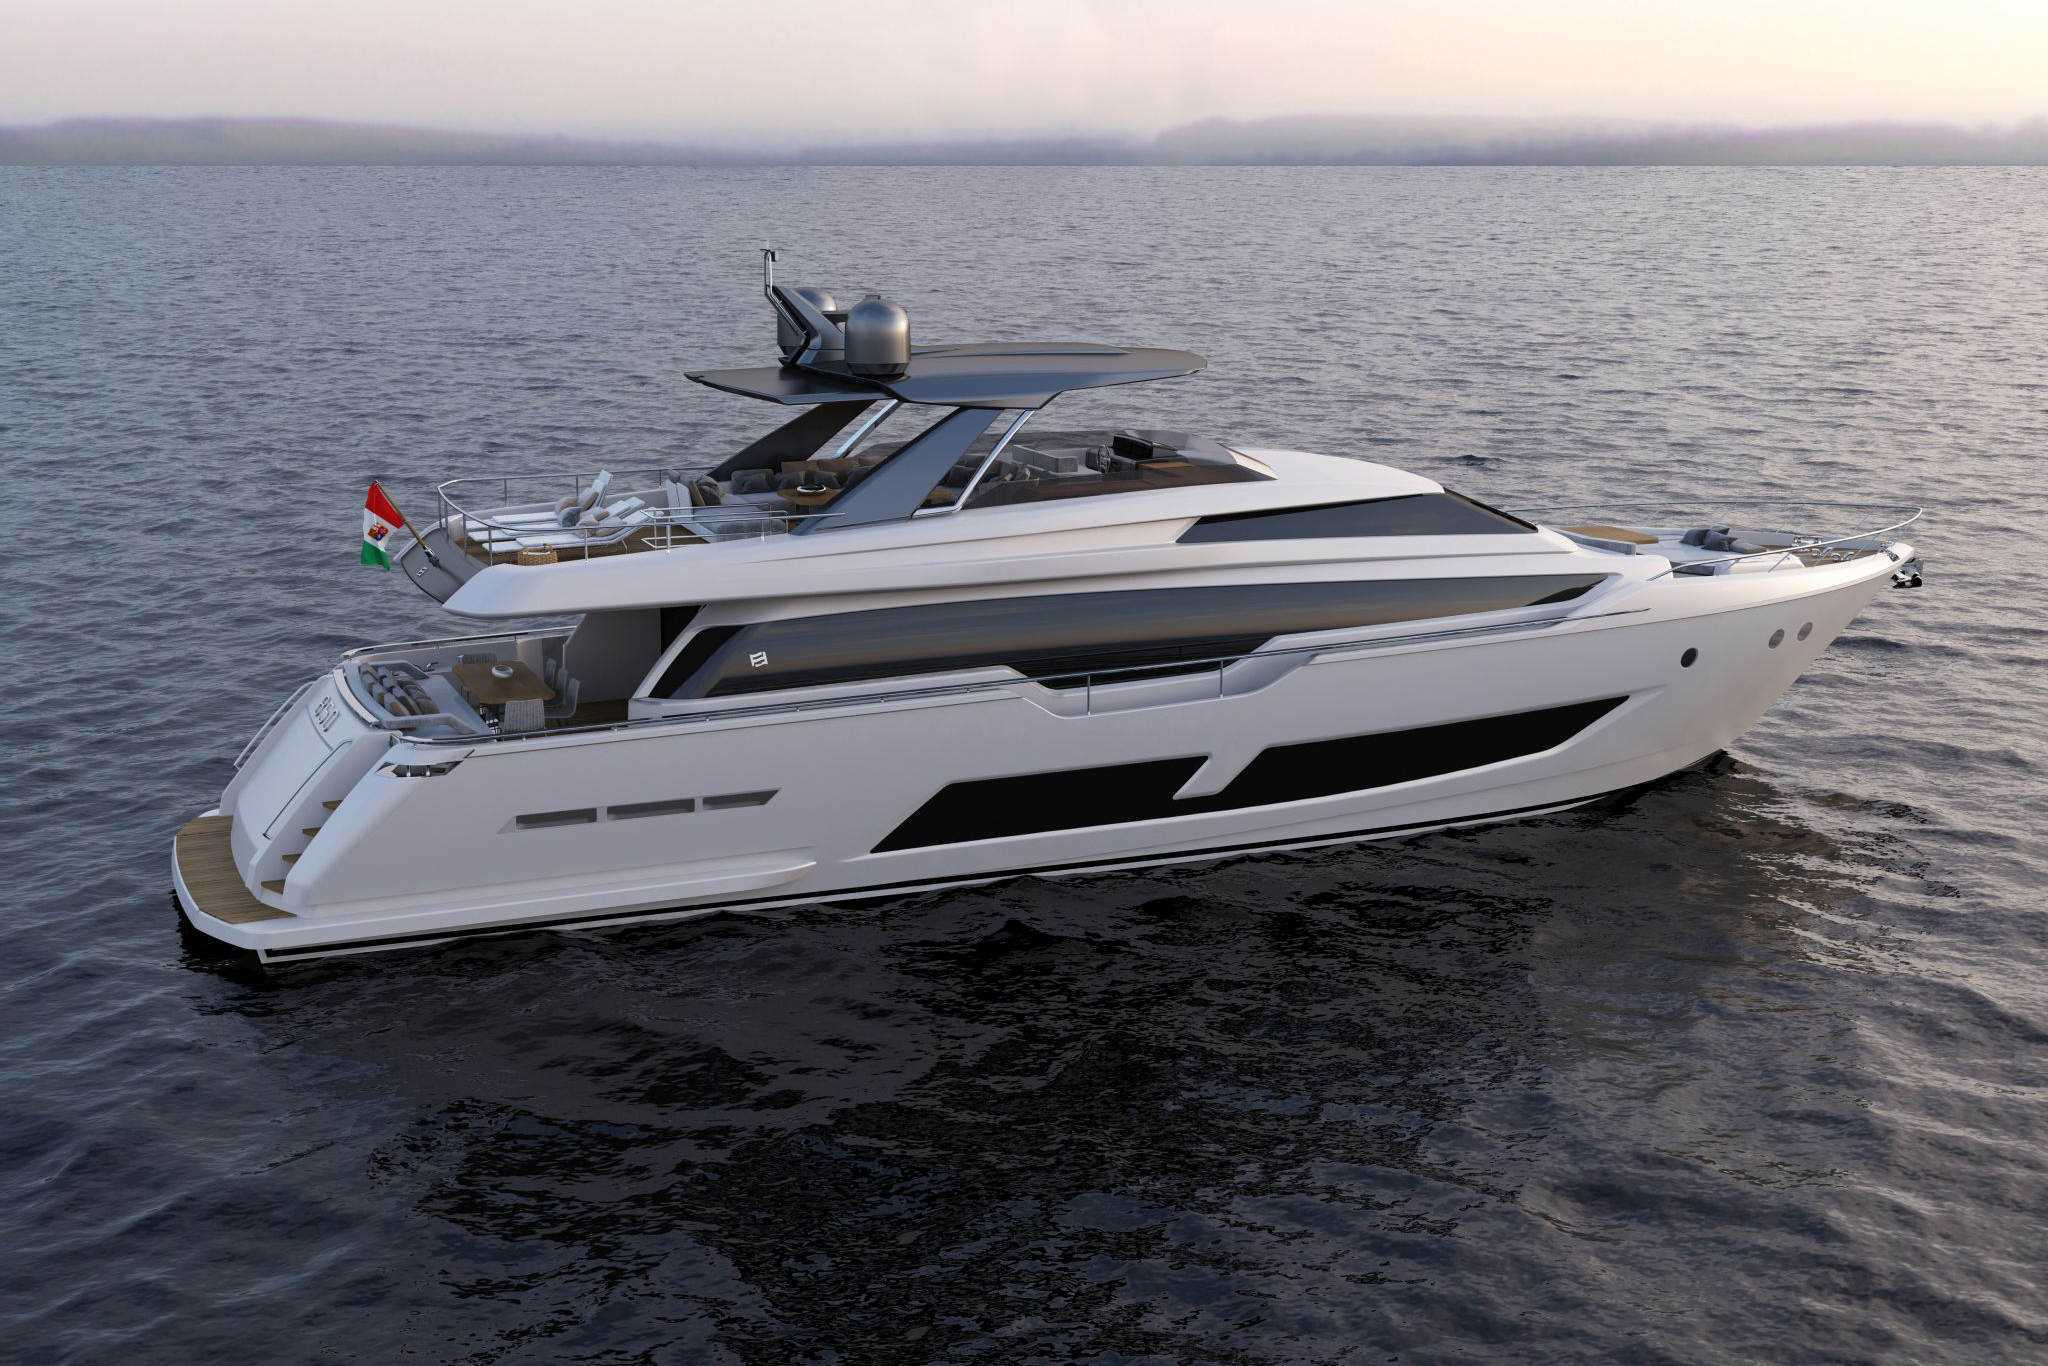 Ferretti Yachts 850: The boldest and most seductive flybridge yacht image